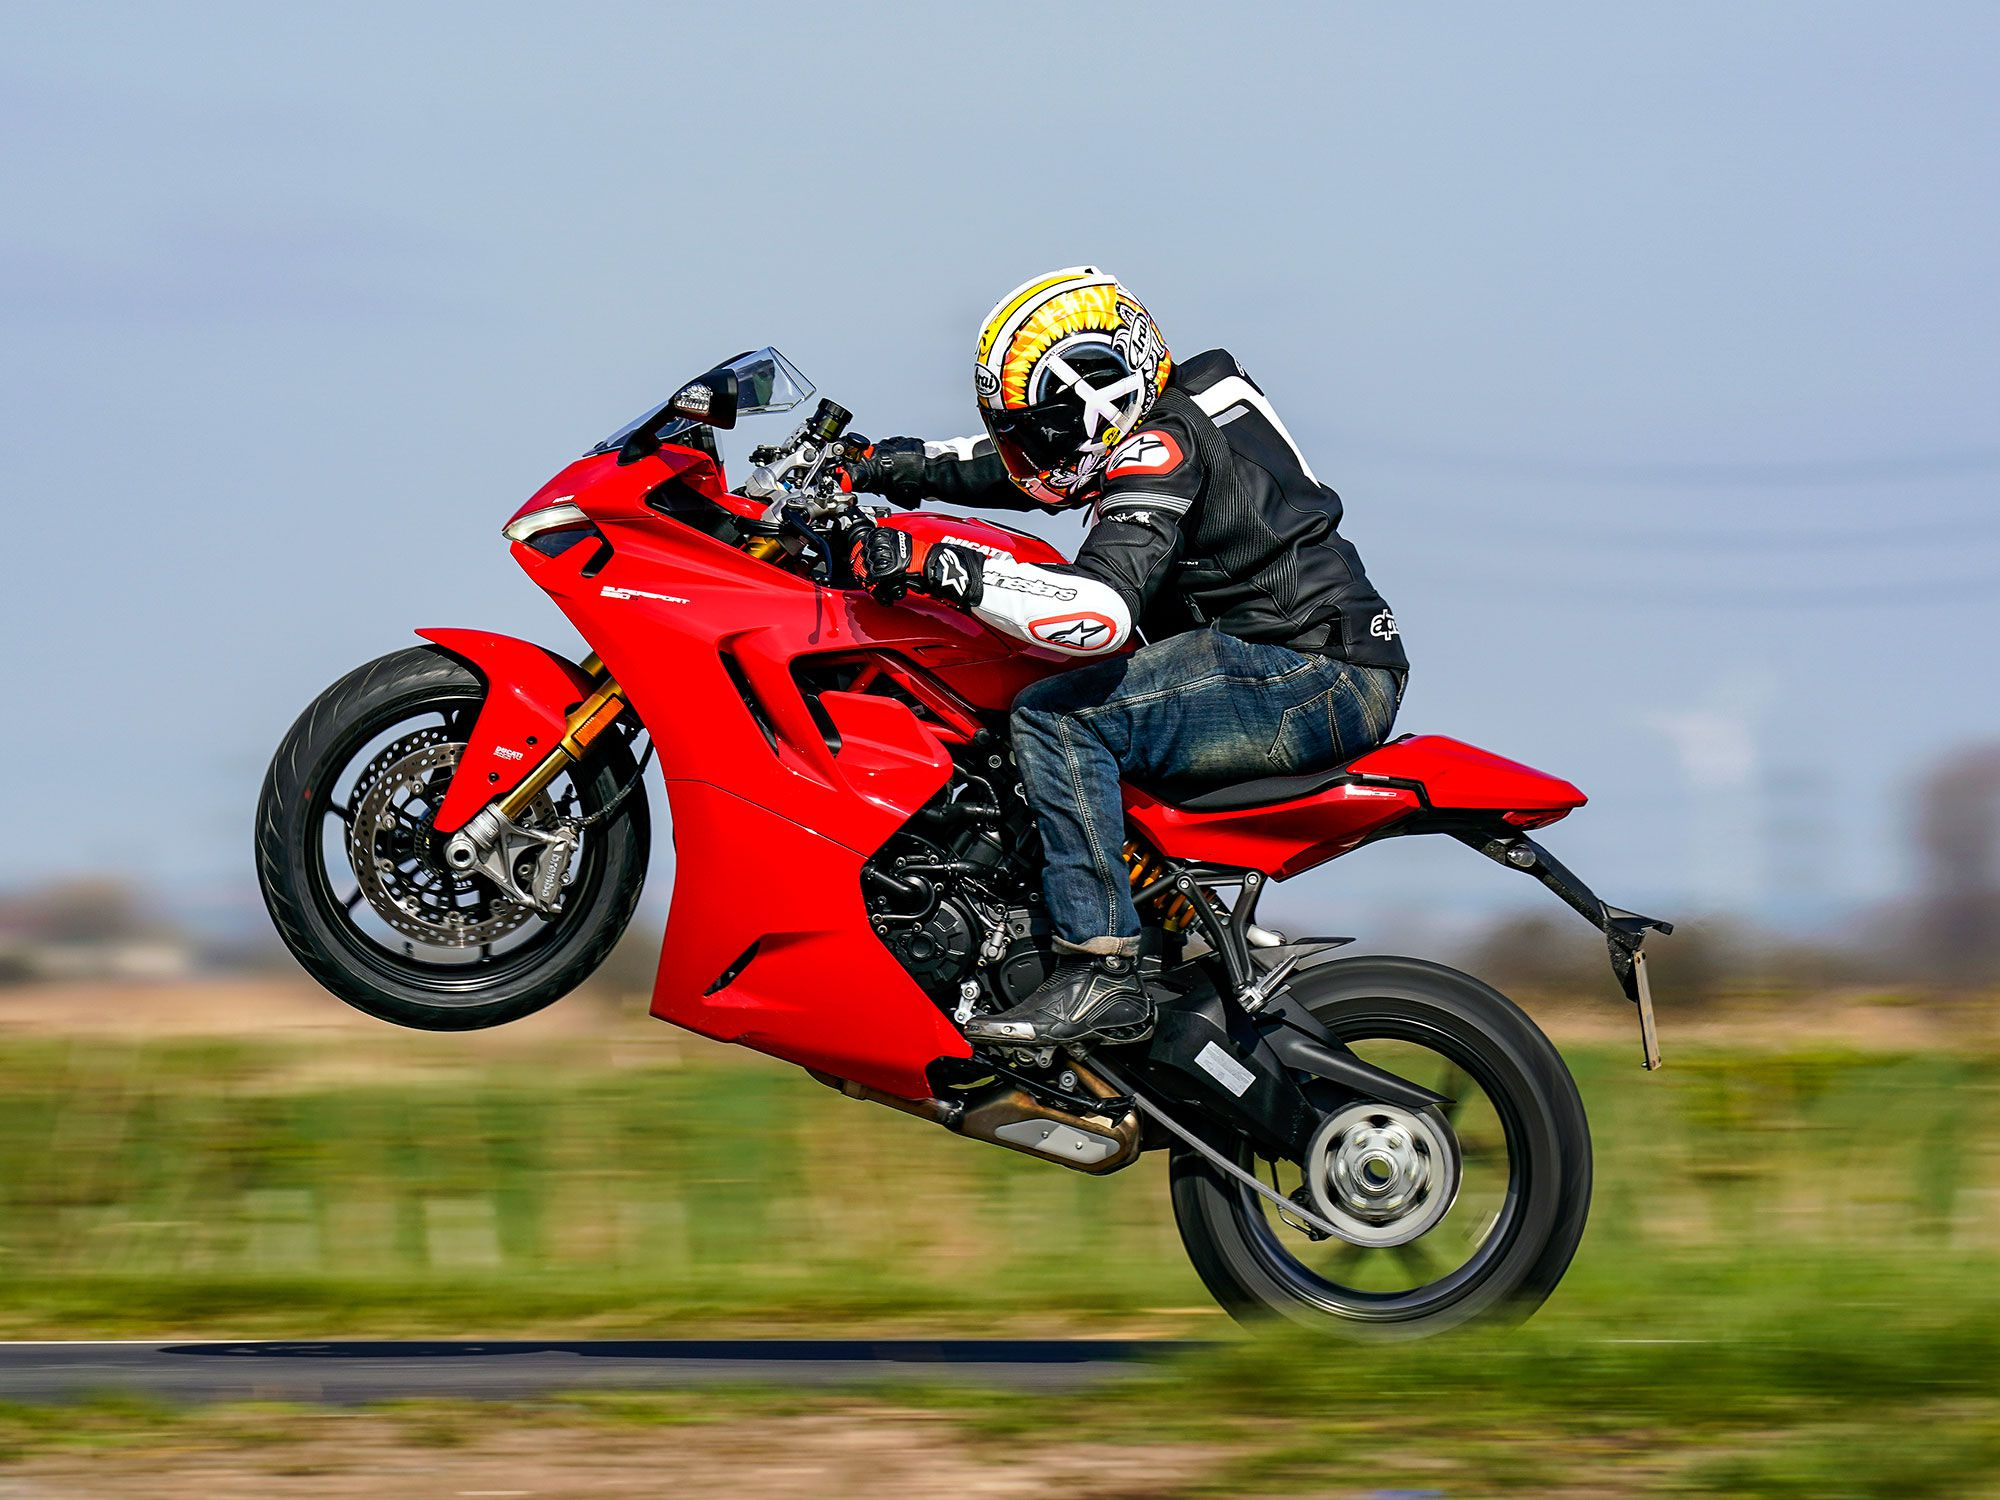 The L-twin desmodromic engine is now Euro 5 compliant, and Ducati claims it hasn't mislaid any power of torque in the process. Peak power is 110 bhp at 9,000 rpm, with peak torque at 69 pound feet at 6,500 rpm.